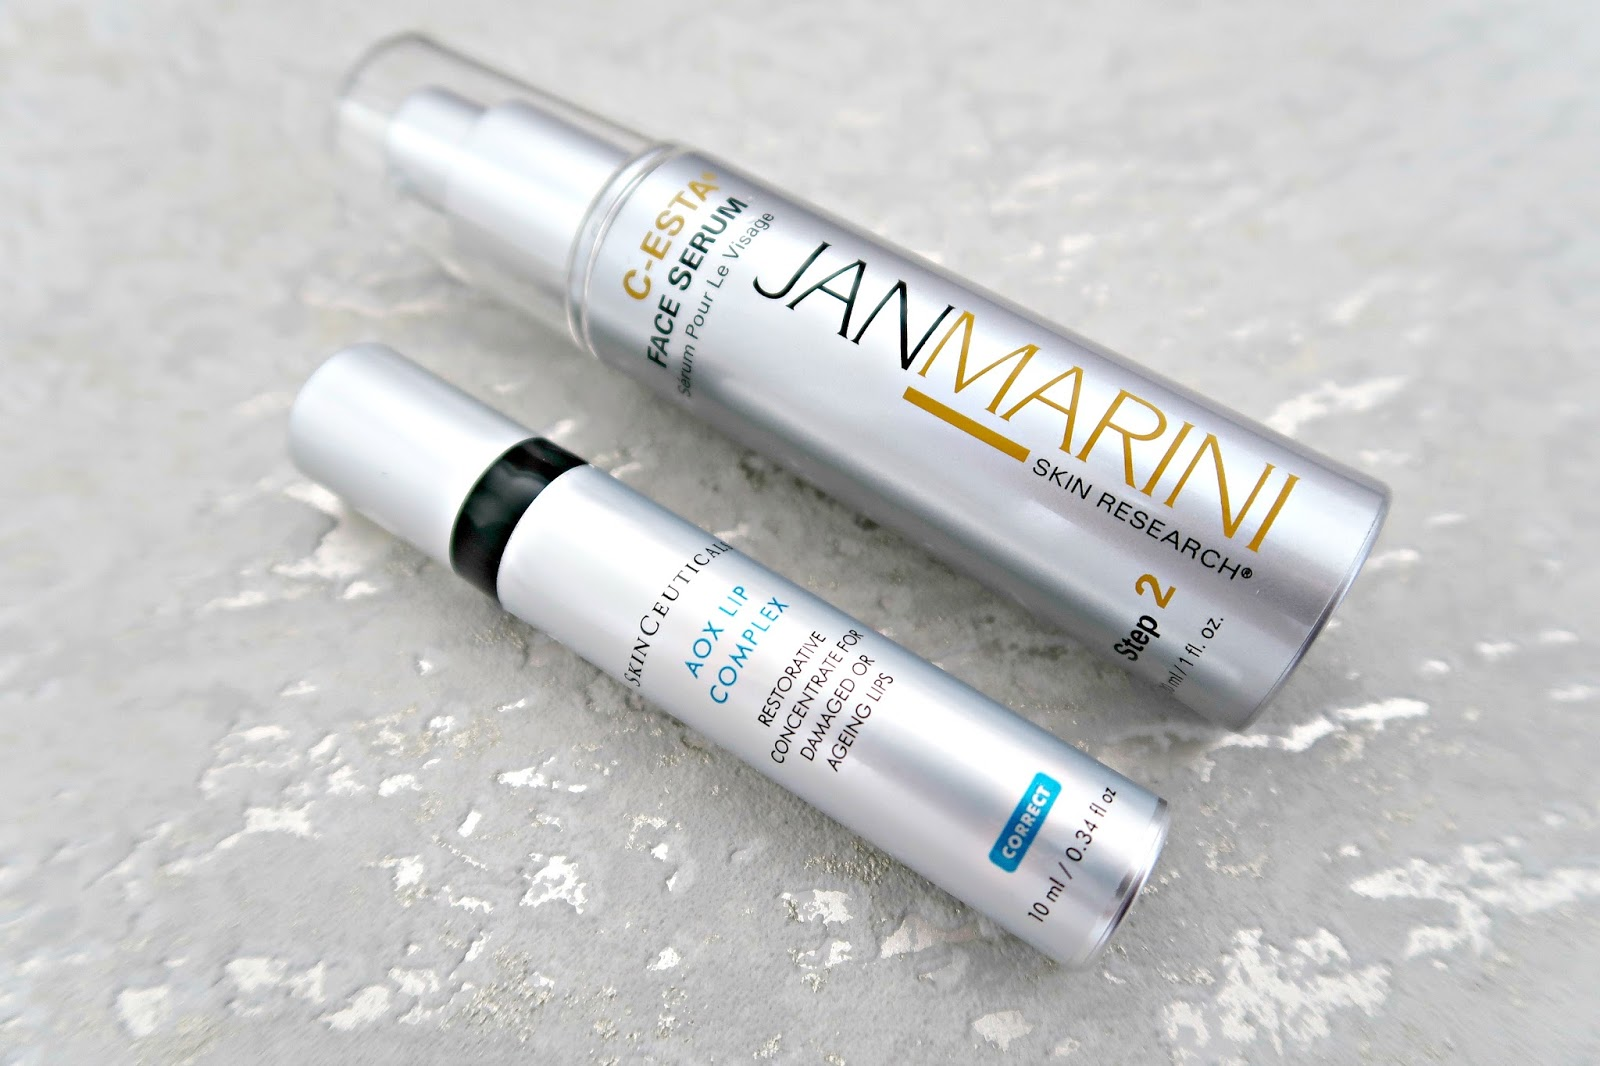 Jan Marini C-ESTA Eye Repair Concentrate and SkinCeuticals AOX Lip Complex blog review seasonal skin savers